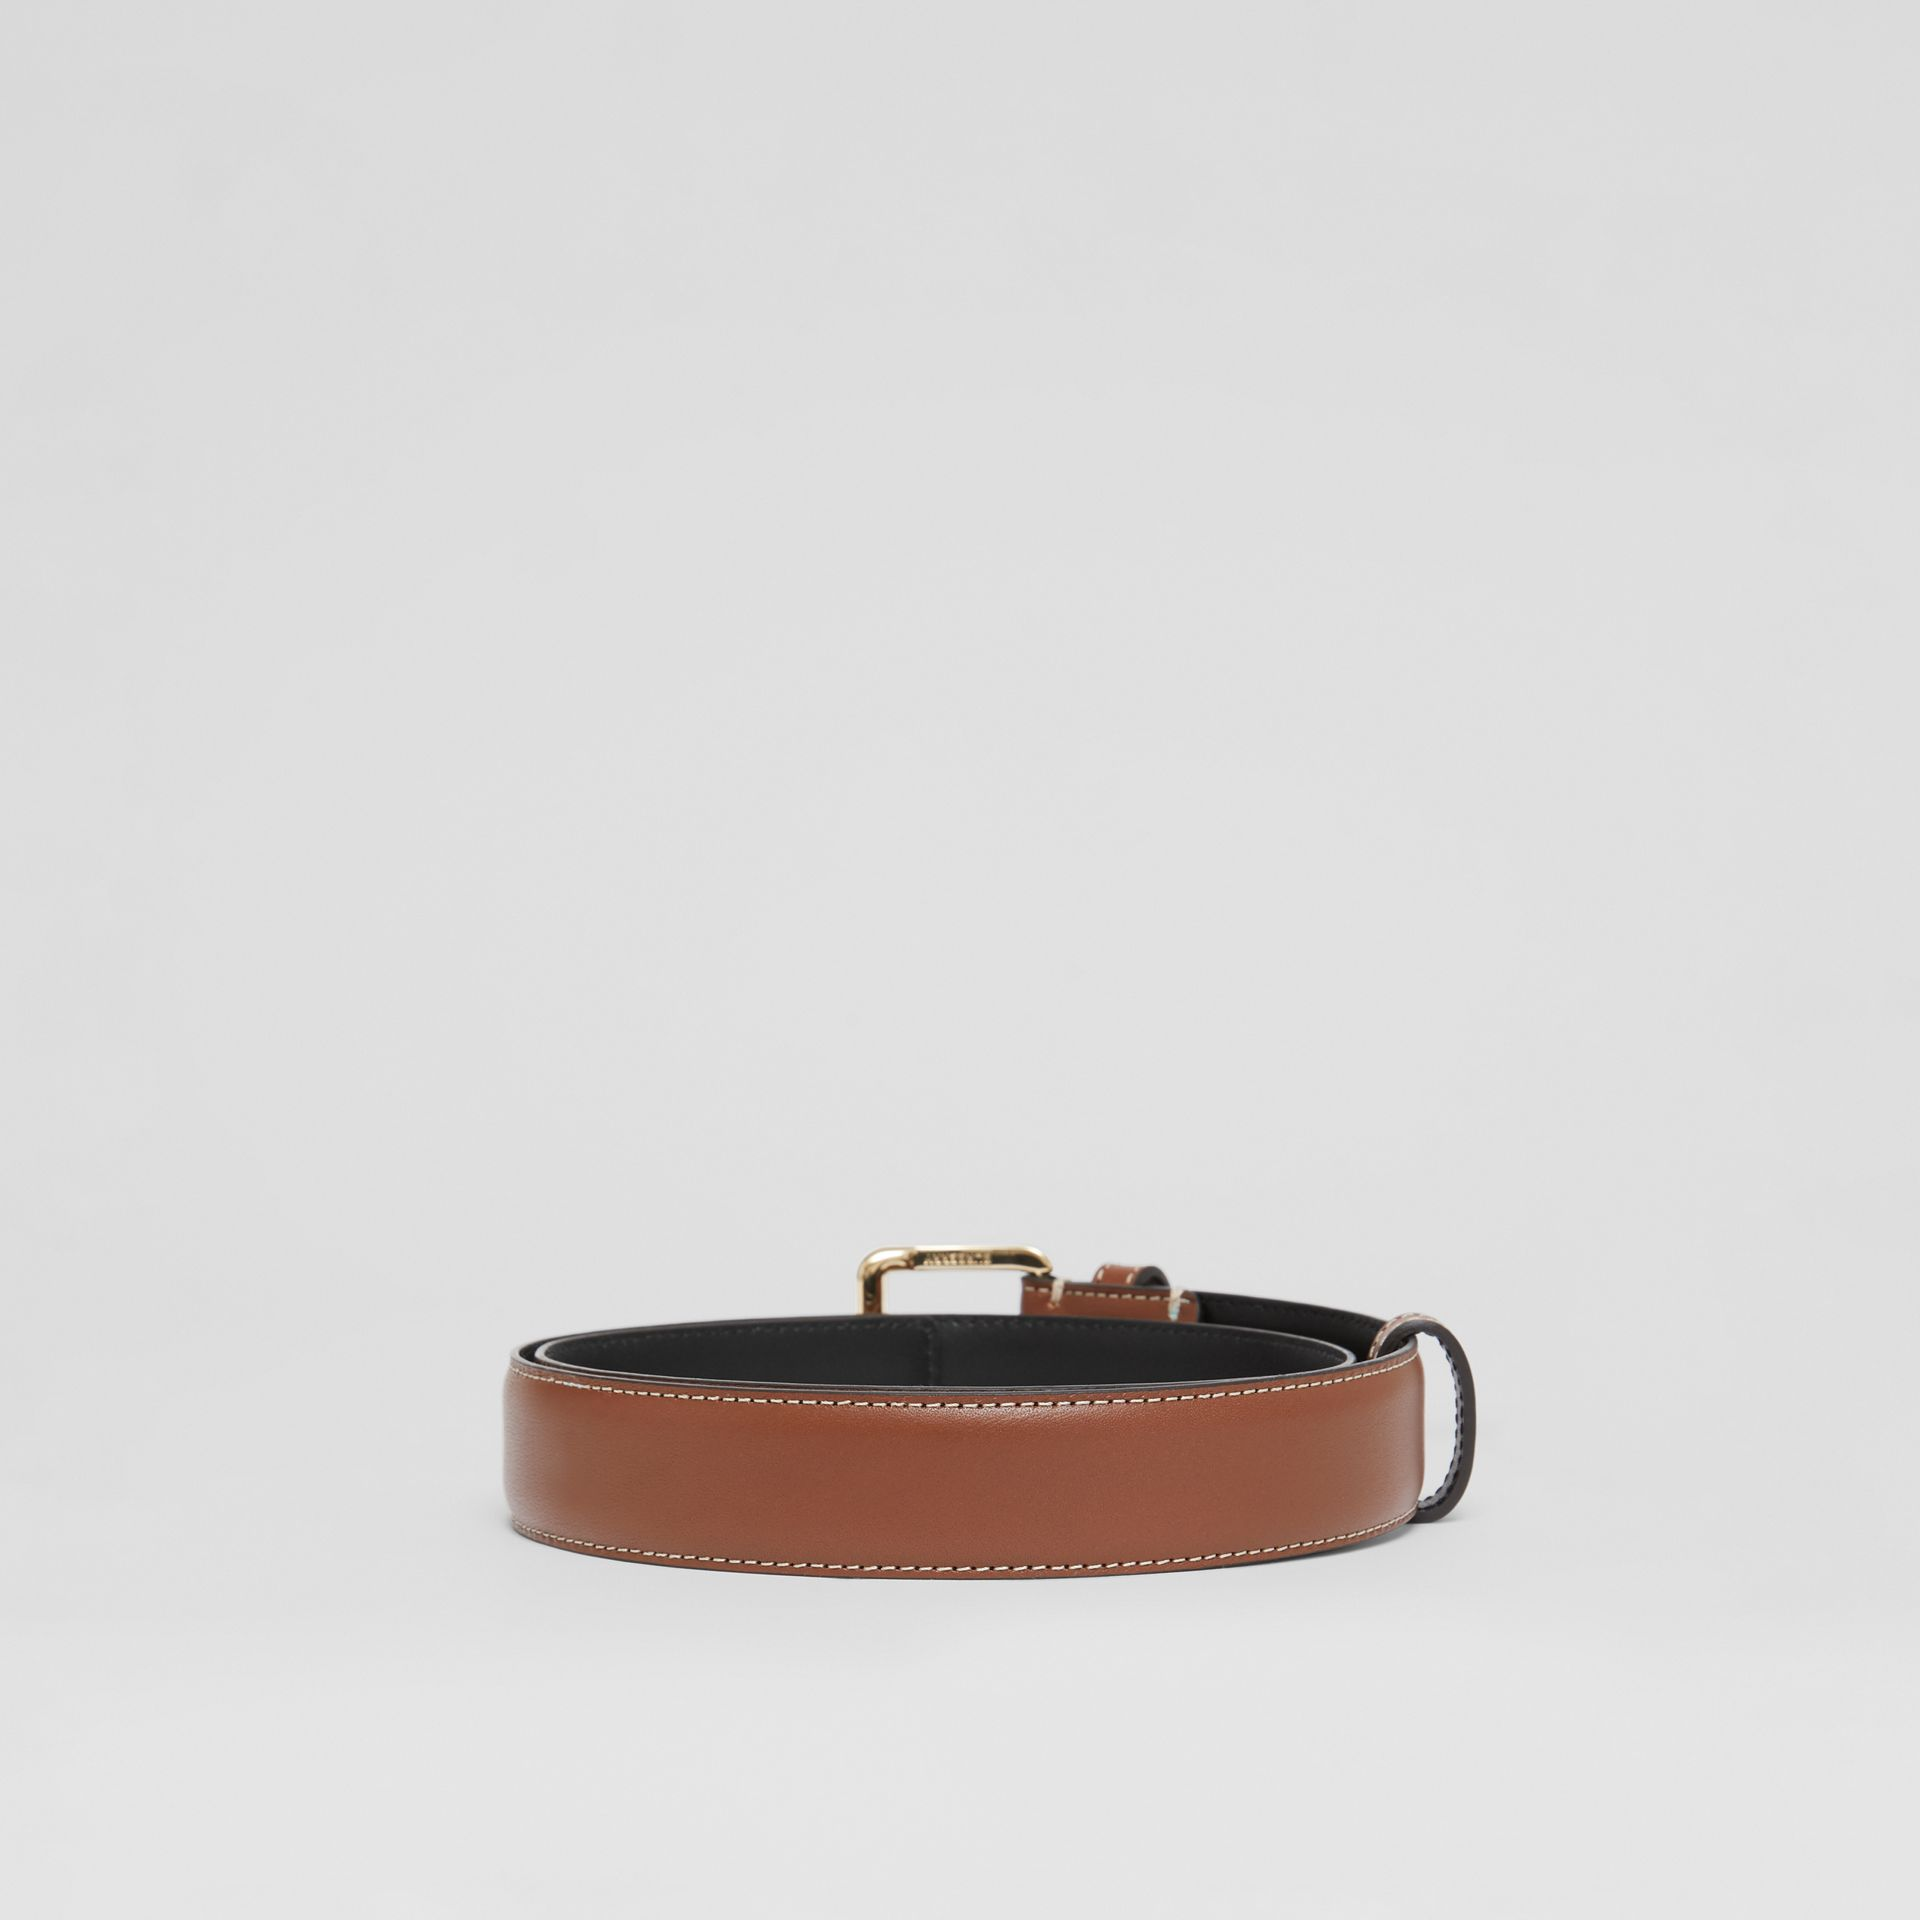 Monogram Motif Topstitched Leather Belt in Tan/light Gold - Women | Burberry - gallery image 4